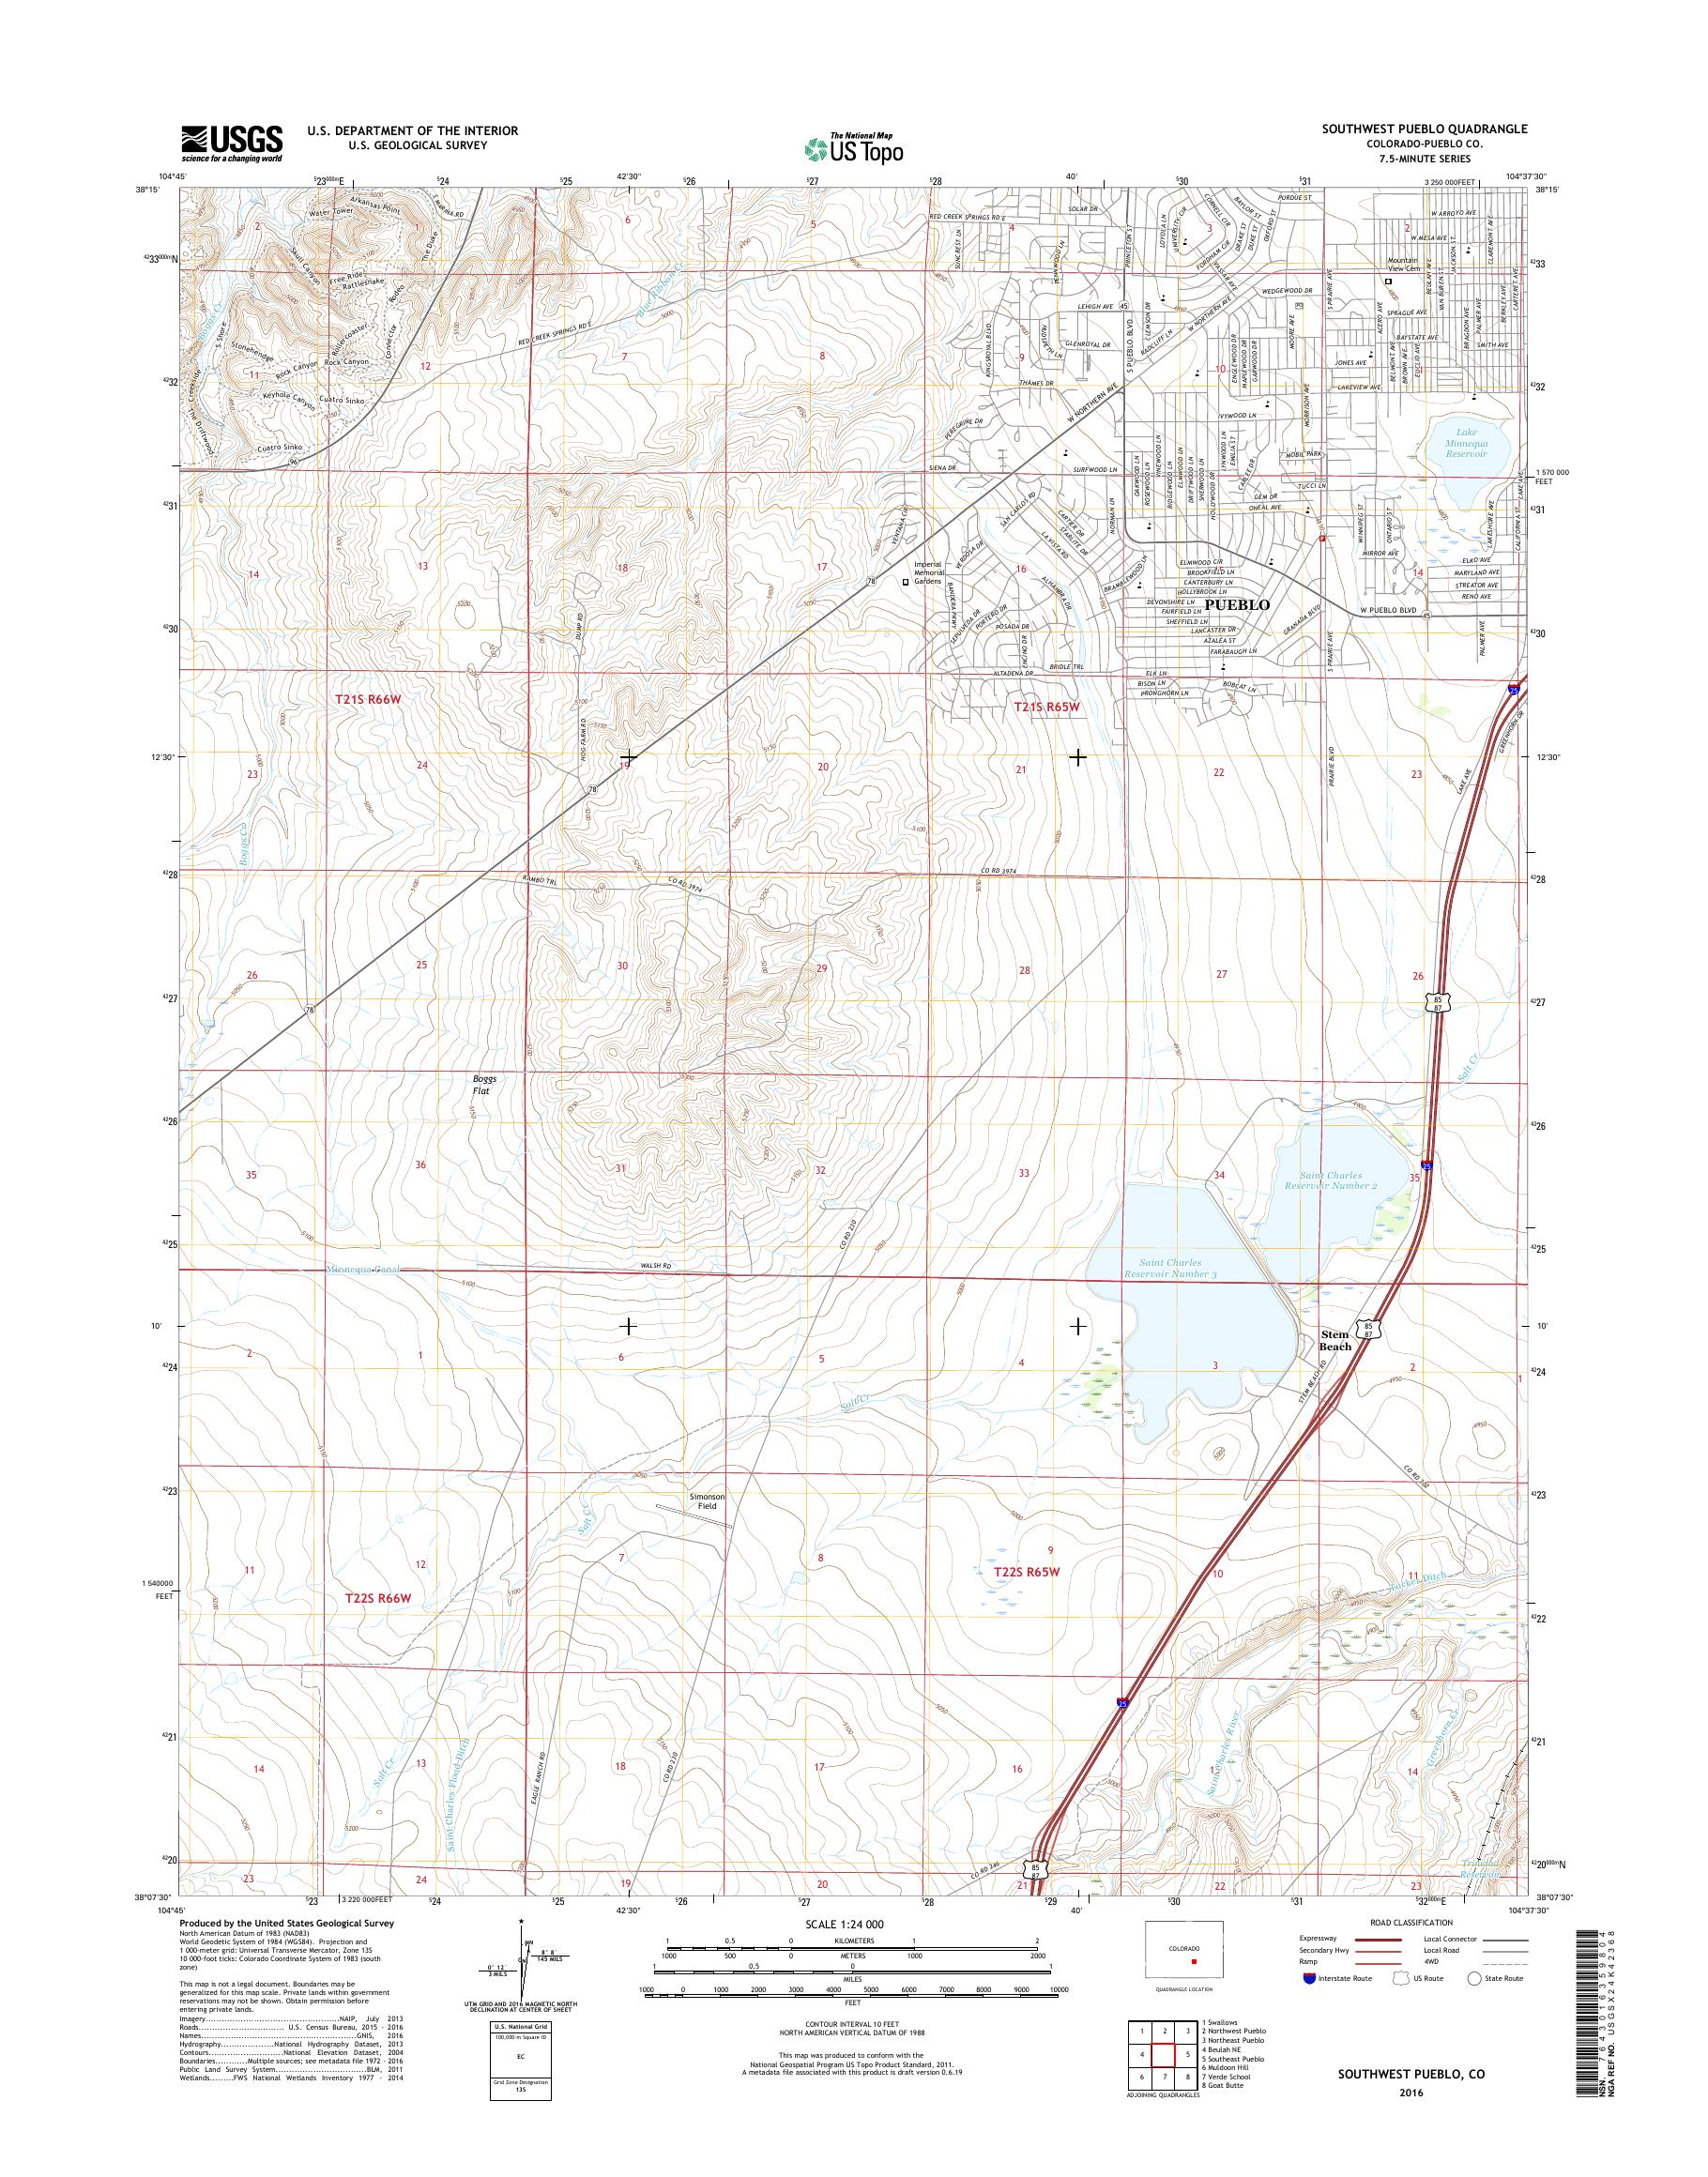 MyTopo Southwest Pueblo, Colorado USGS Quad Topo Map